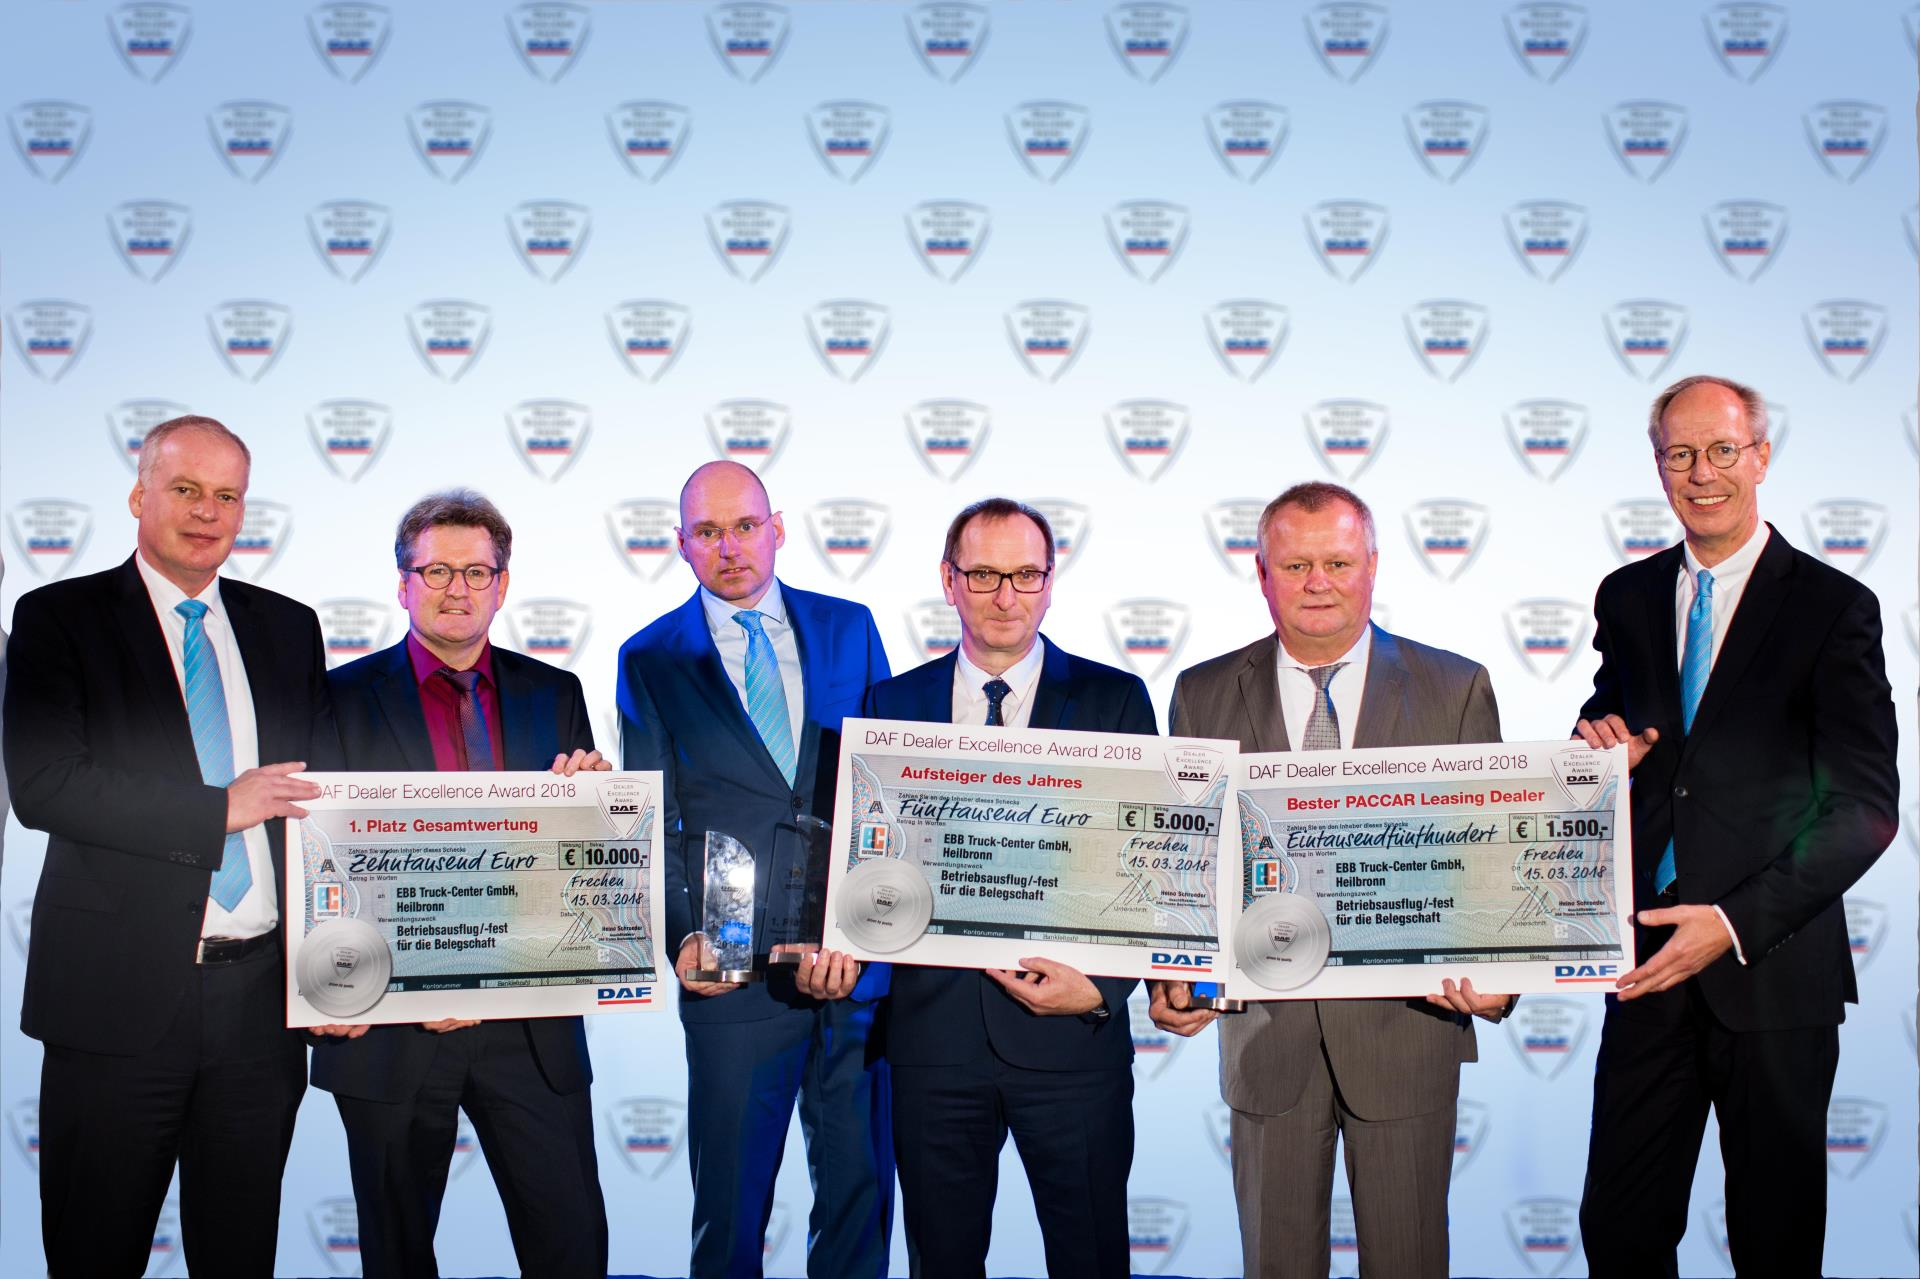 DAF-Dealer-Excellence-Award-Gewinner-002-EBB-Truck-Center-GmbH